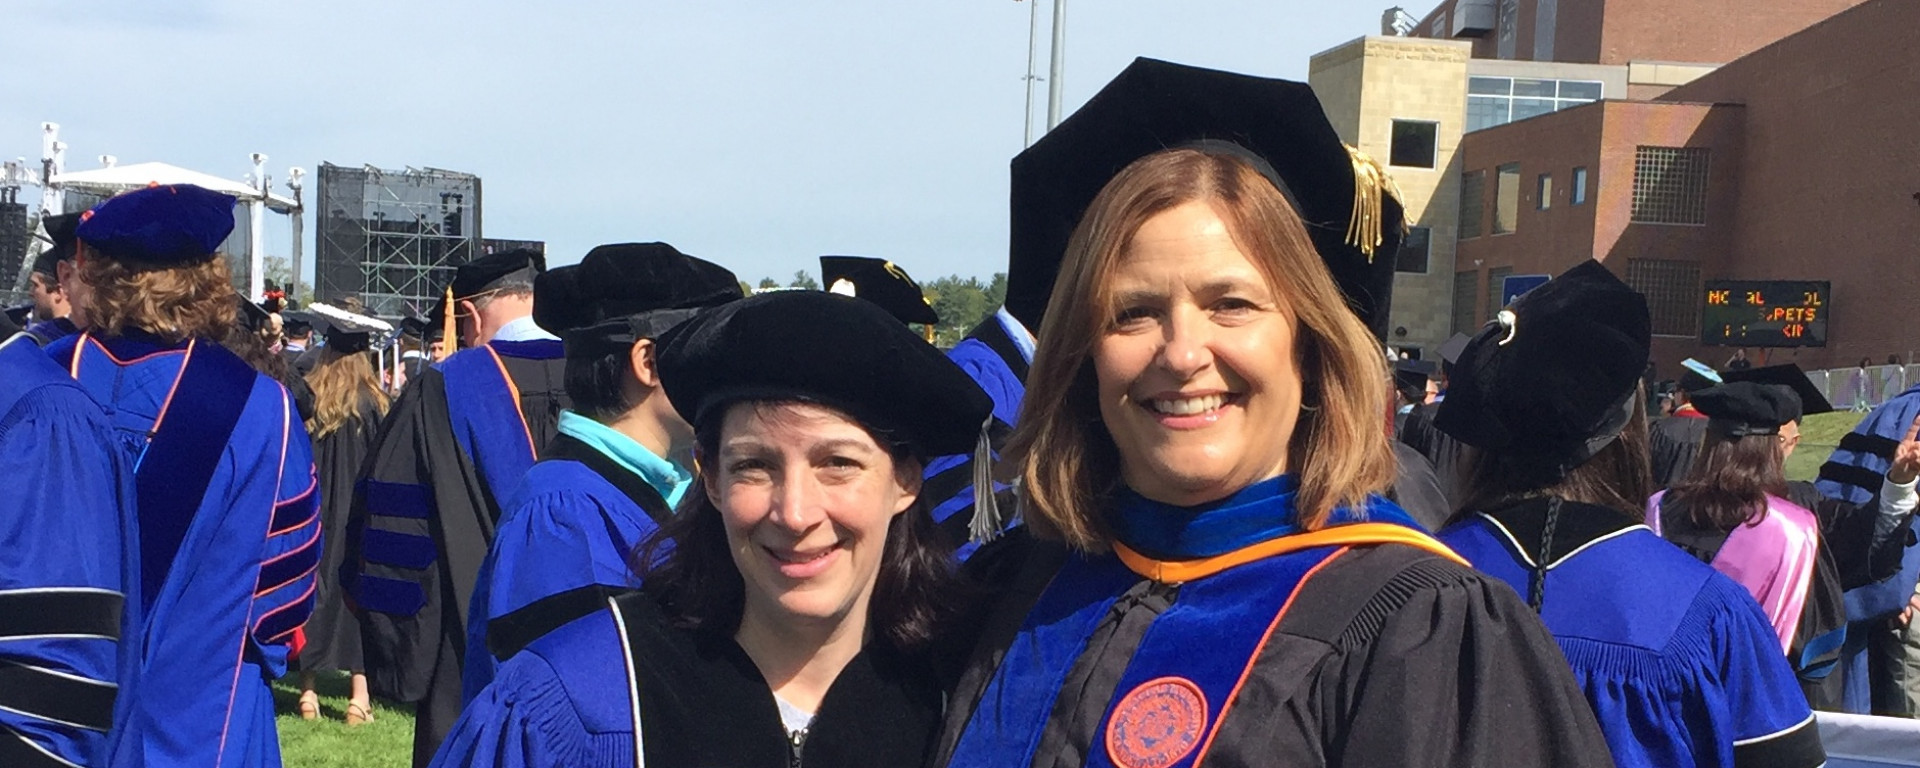 Hard work pays off for Erika M. Baril, Ph.D.